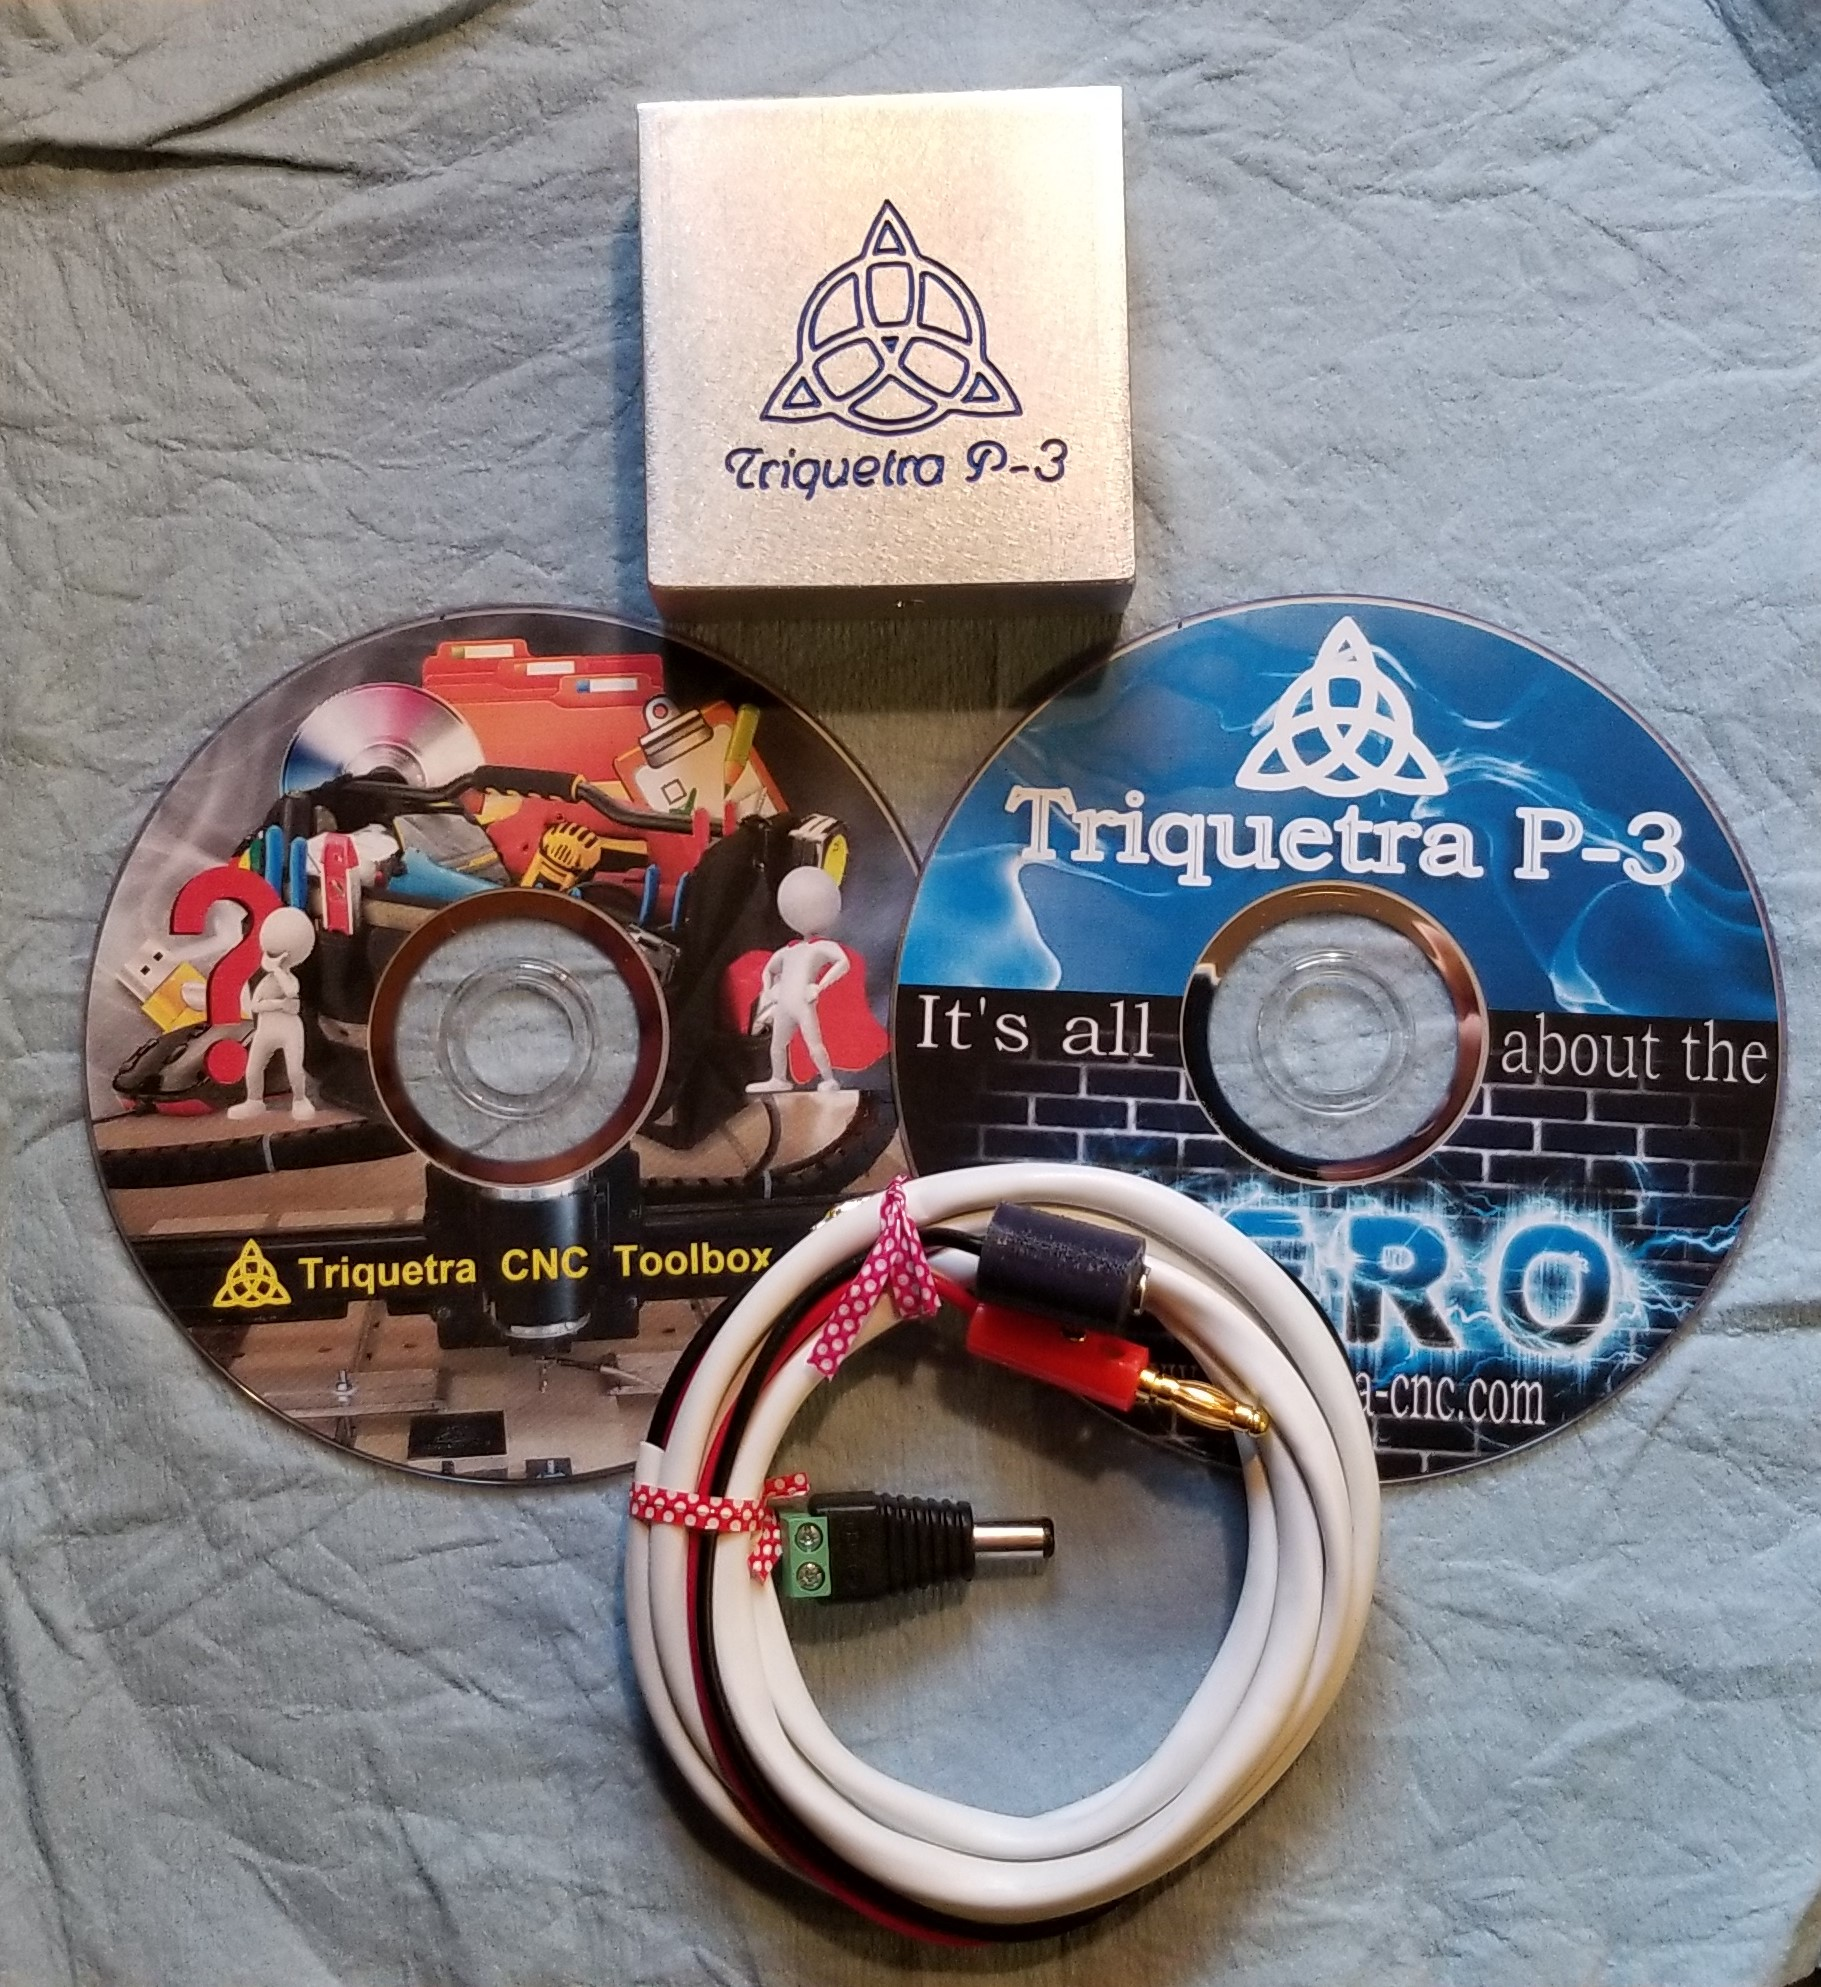 Triquetra P3 Auto Zero Touch Plate With Triquetra Tool Box